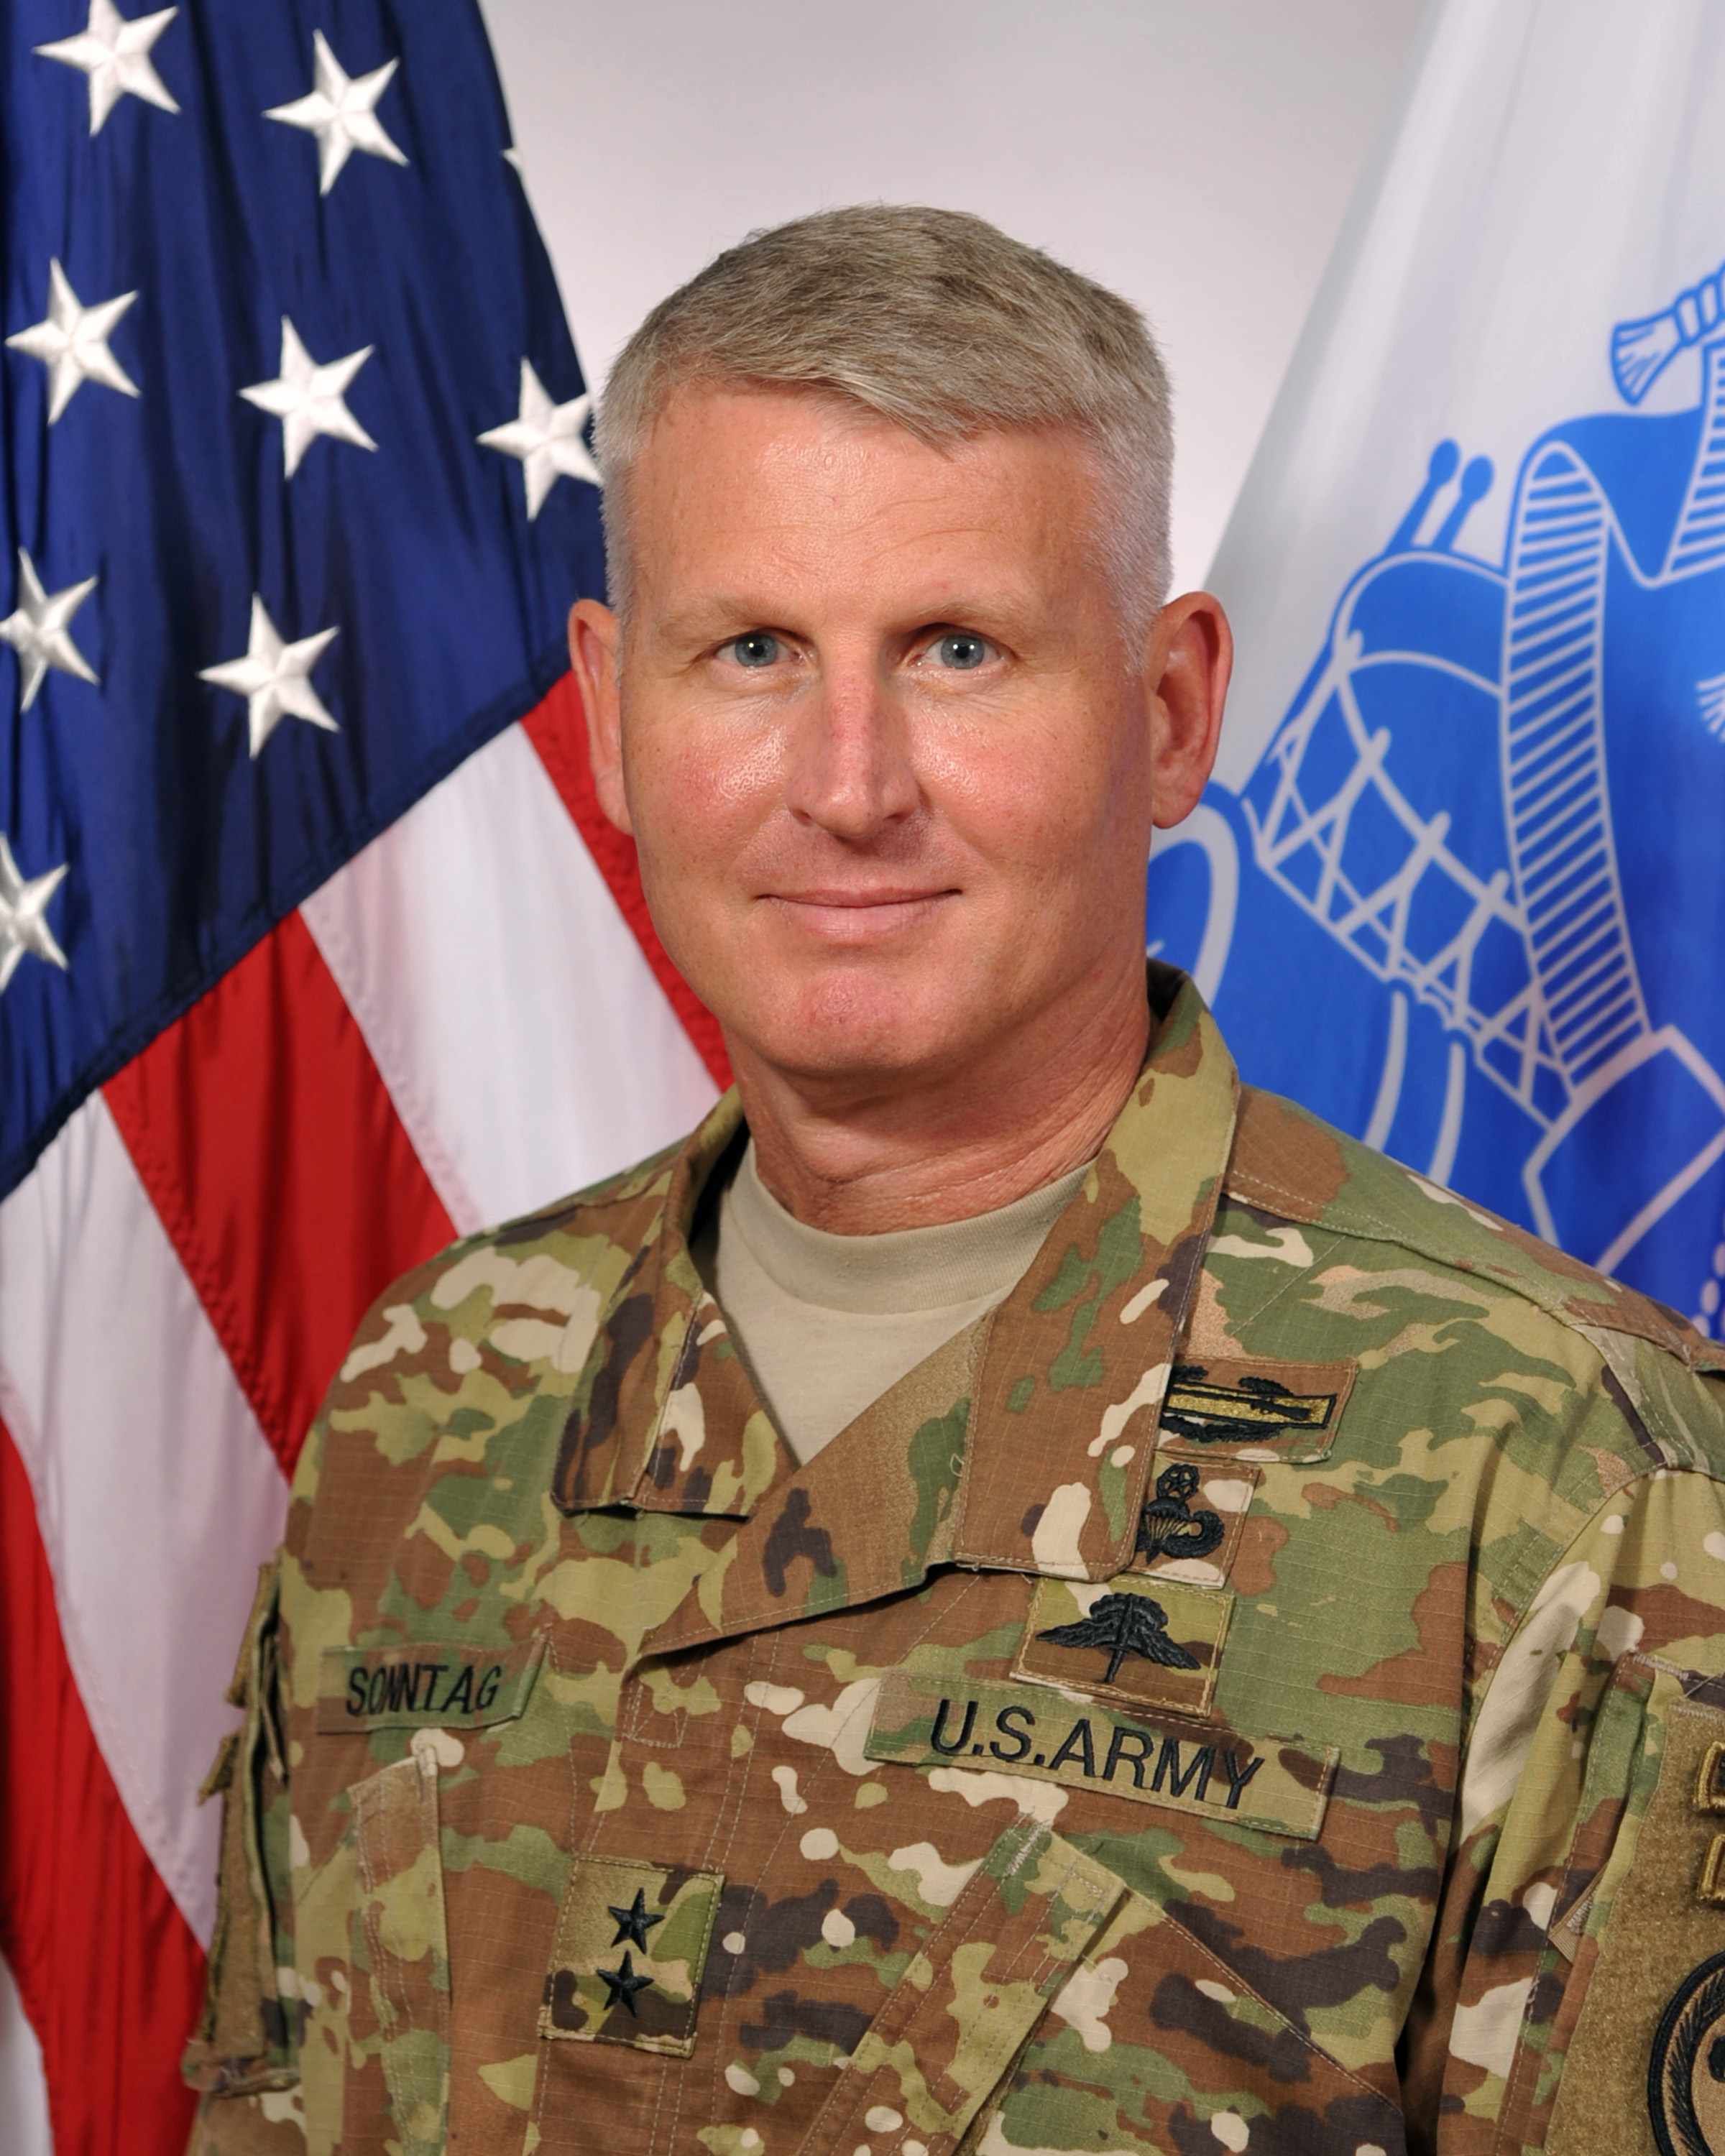 CJTF-HOA Commanding General Biography